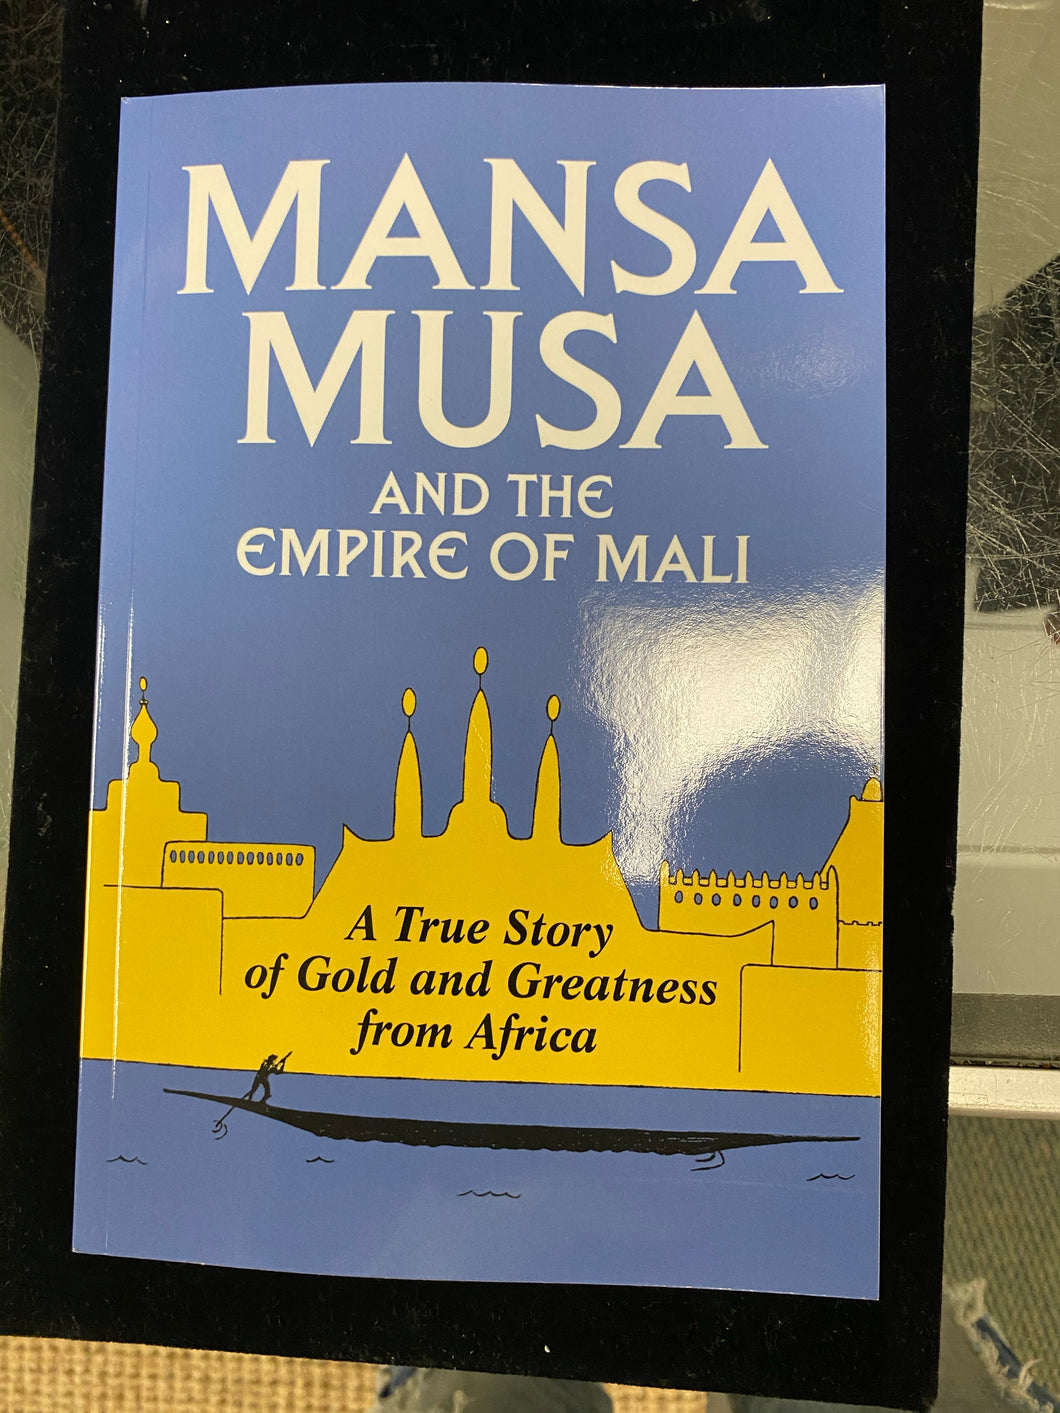 Mansa Musa and the empire of mali